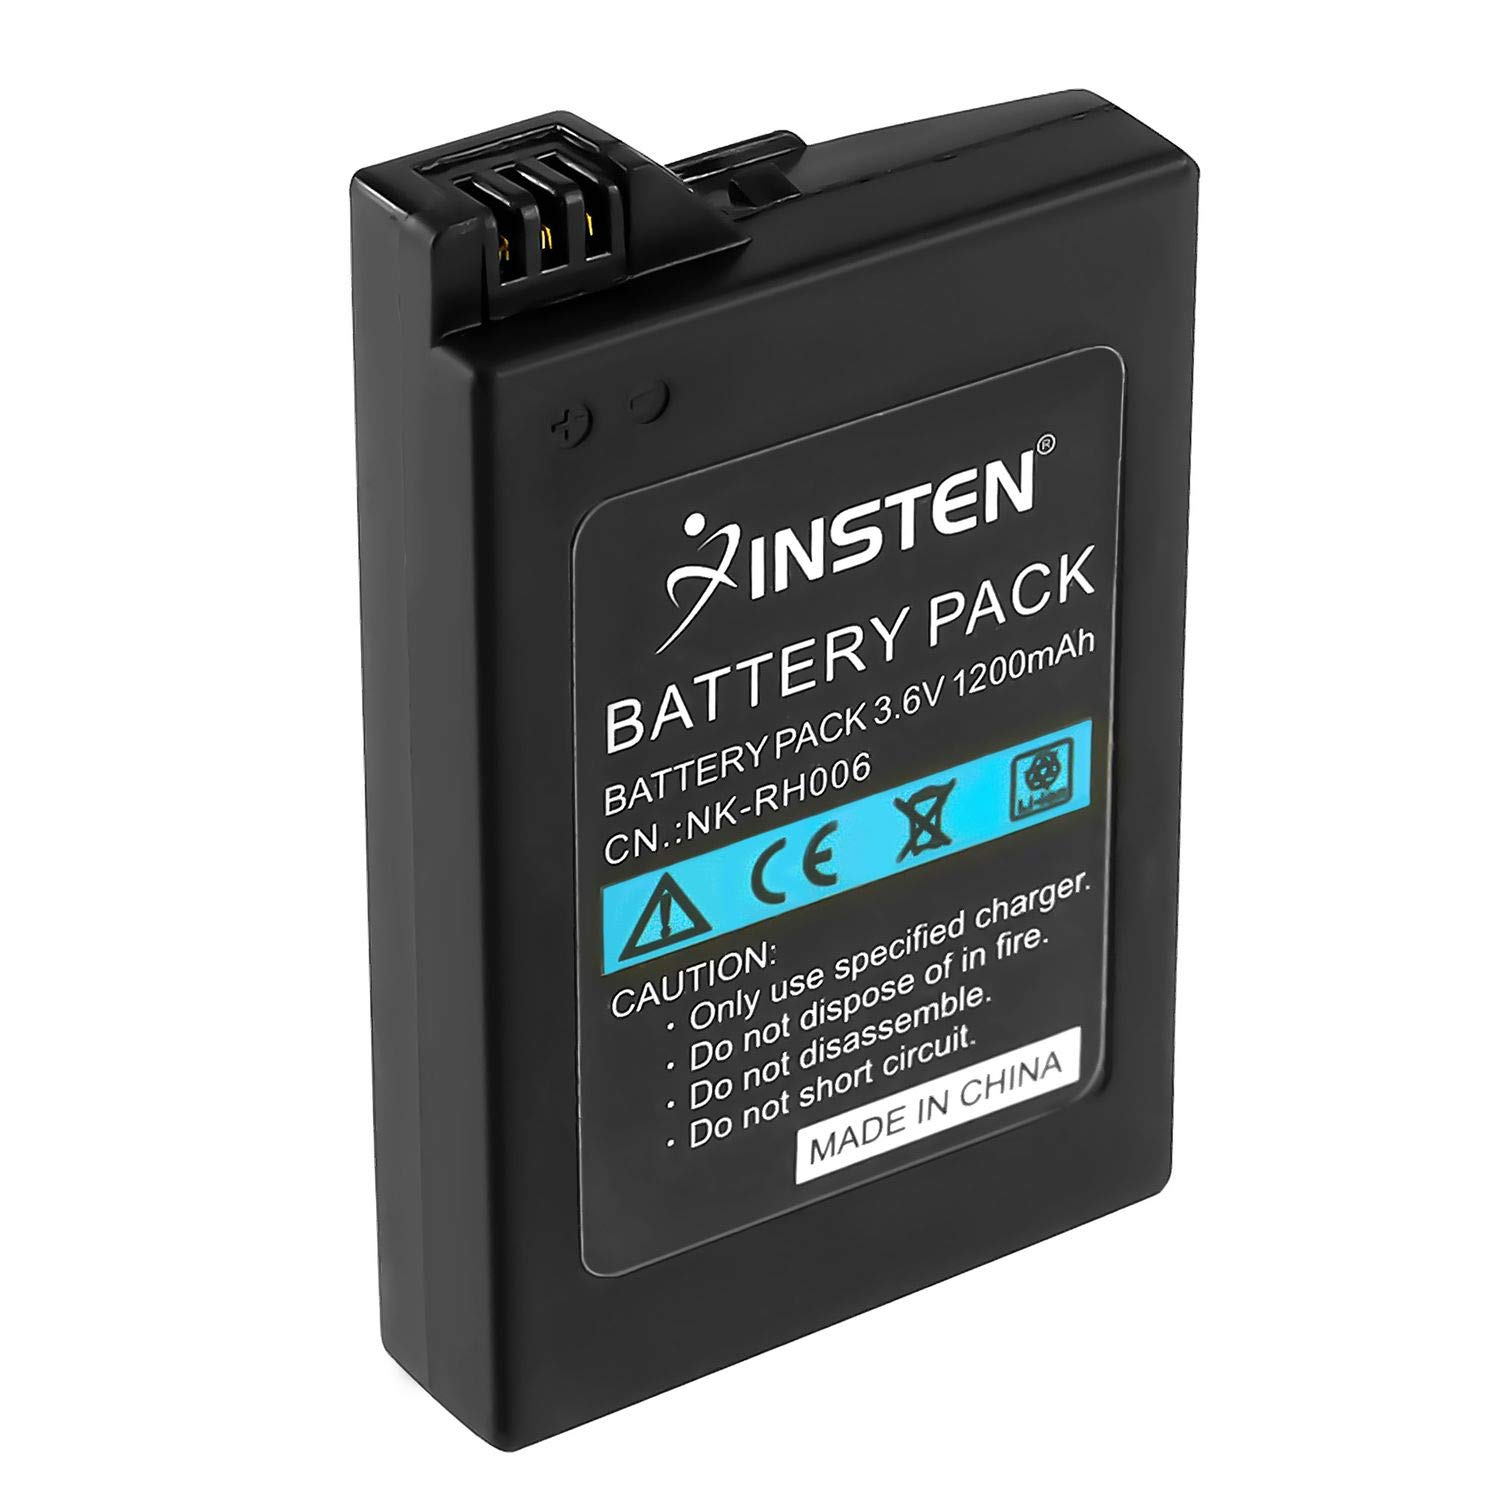 Insten Rechargeable Replacement Battery 1200mAh 3.6V Compatible With Sony PSP 3000 / PSP Silm 2000